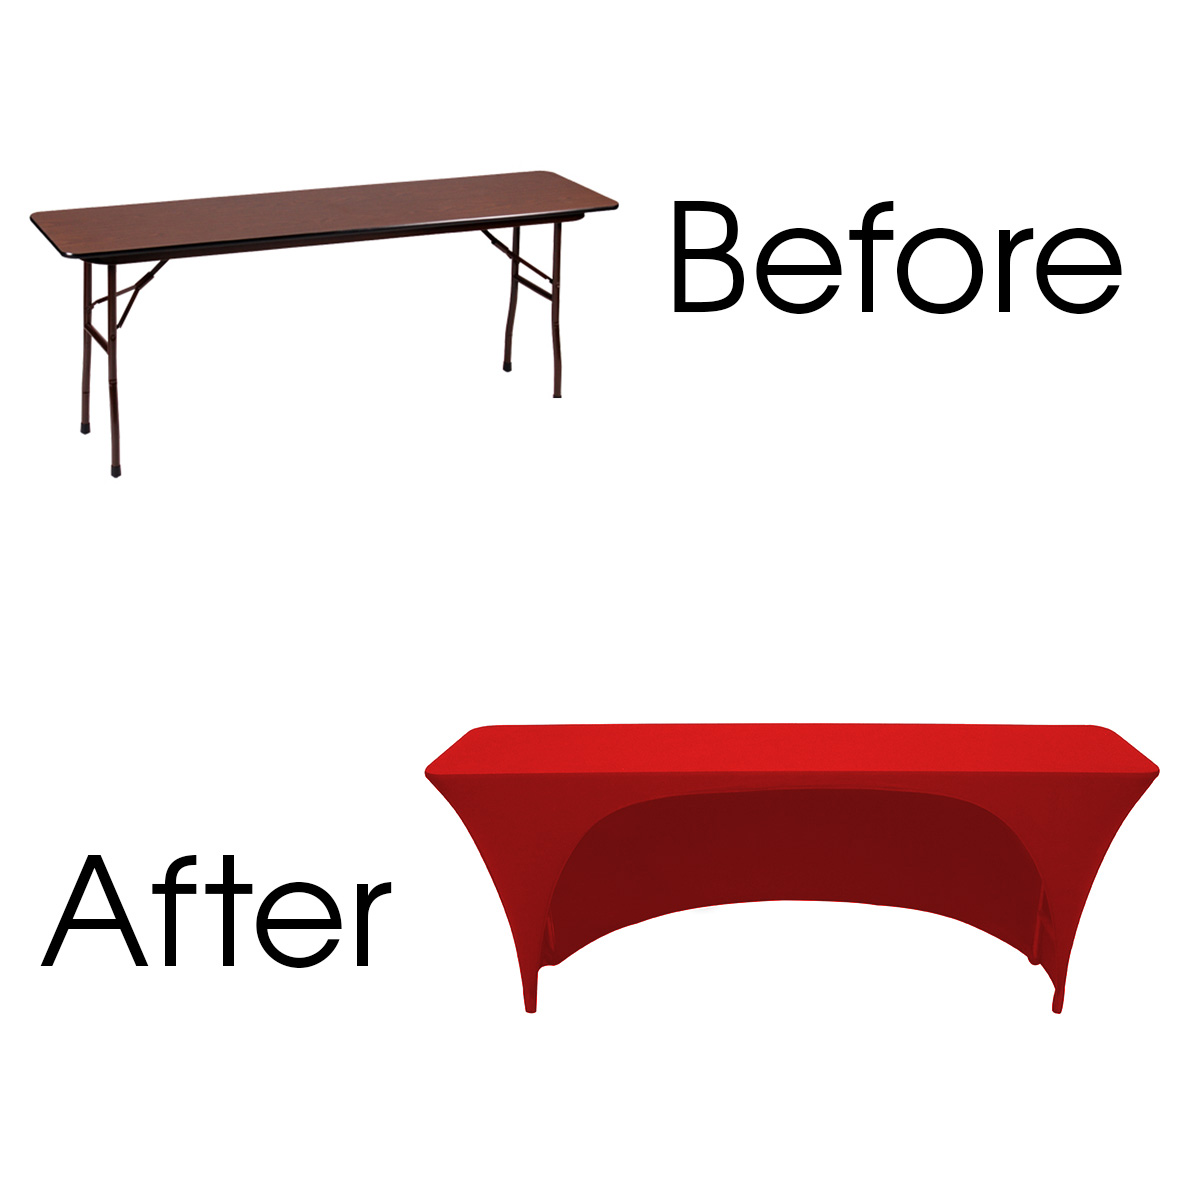 stretch-spandex-6ft-18-inches-open-back-rectangular-table-covers-red-before-after.jpg